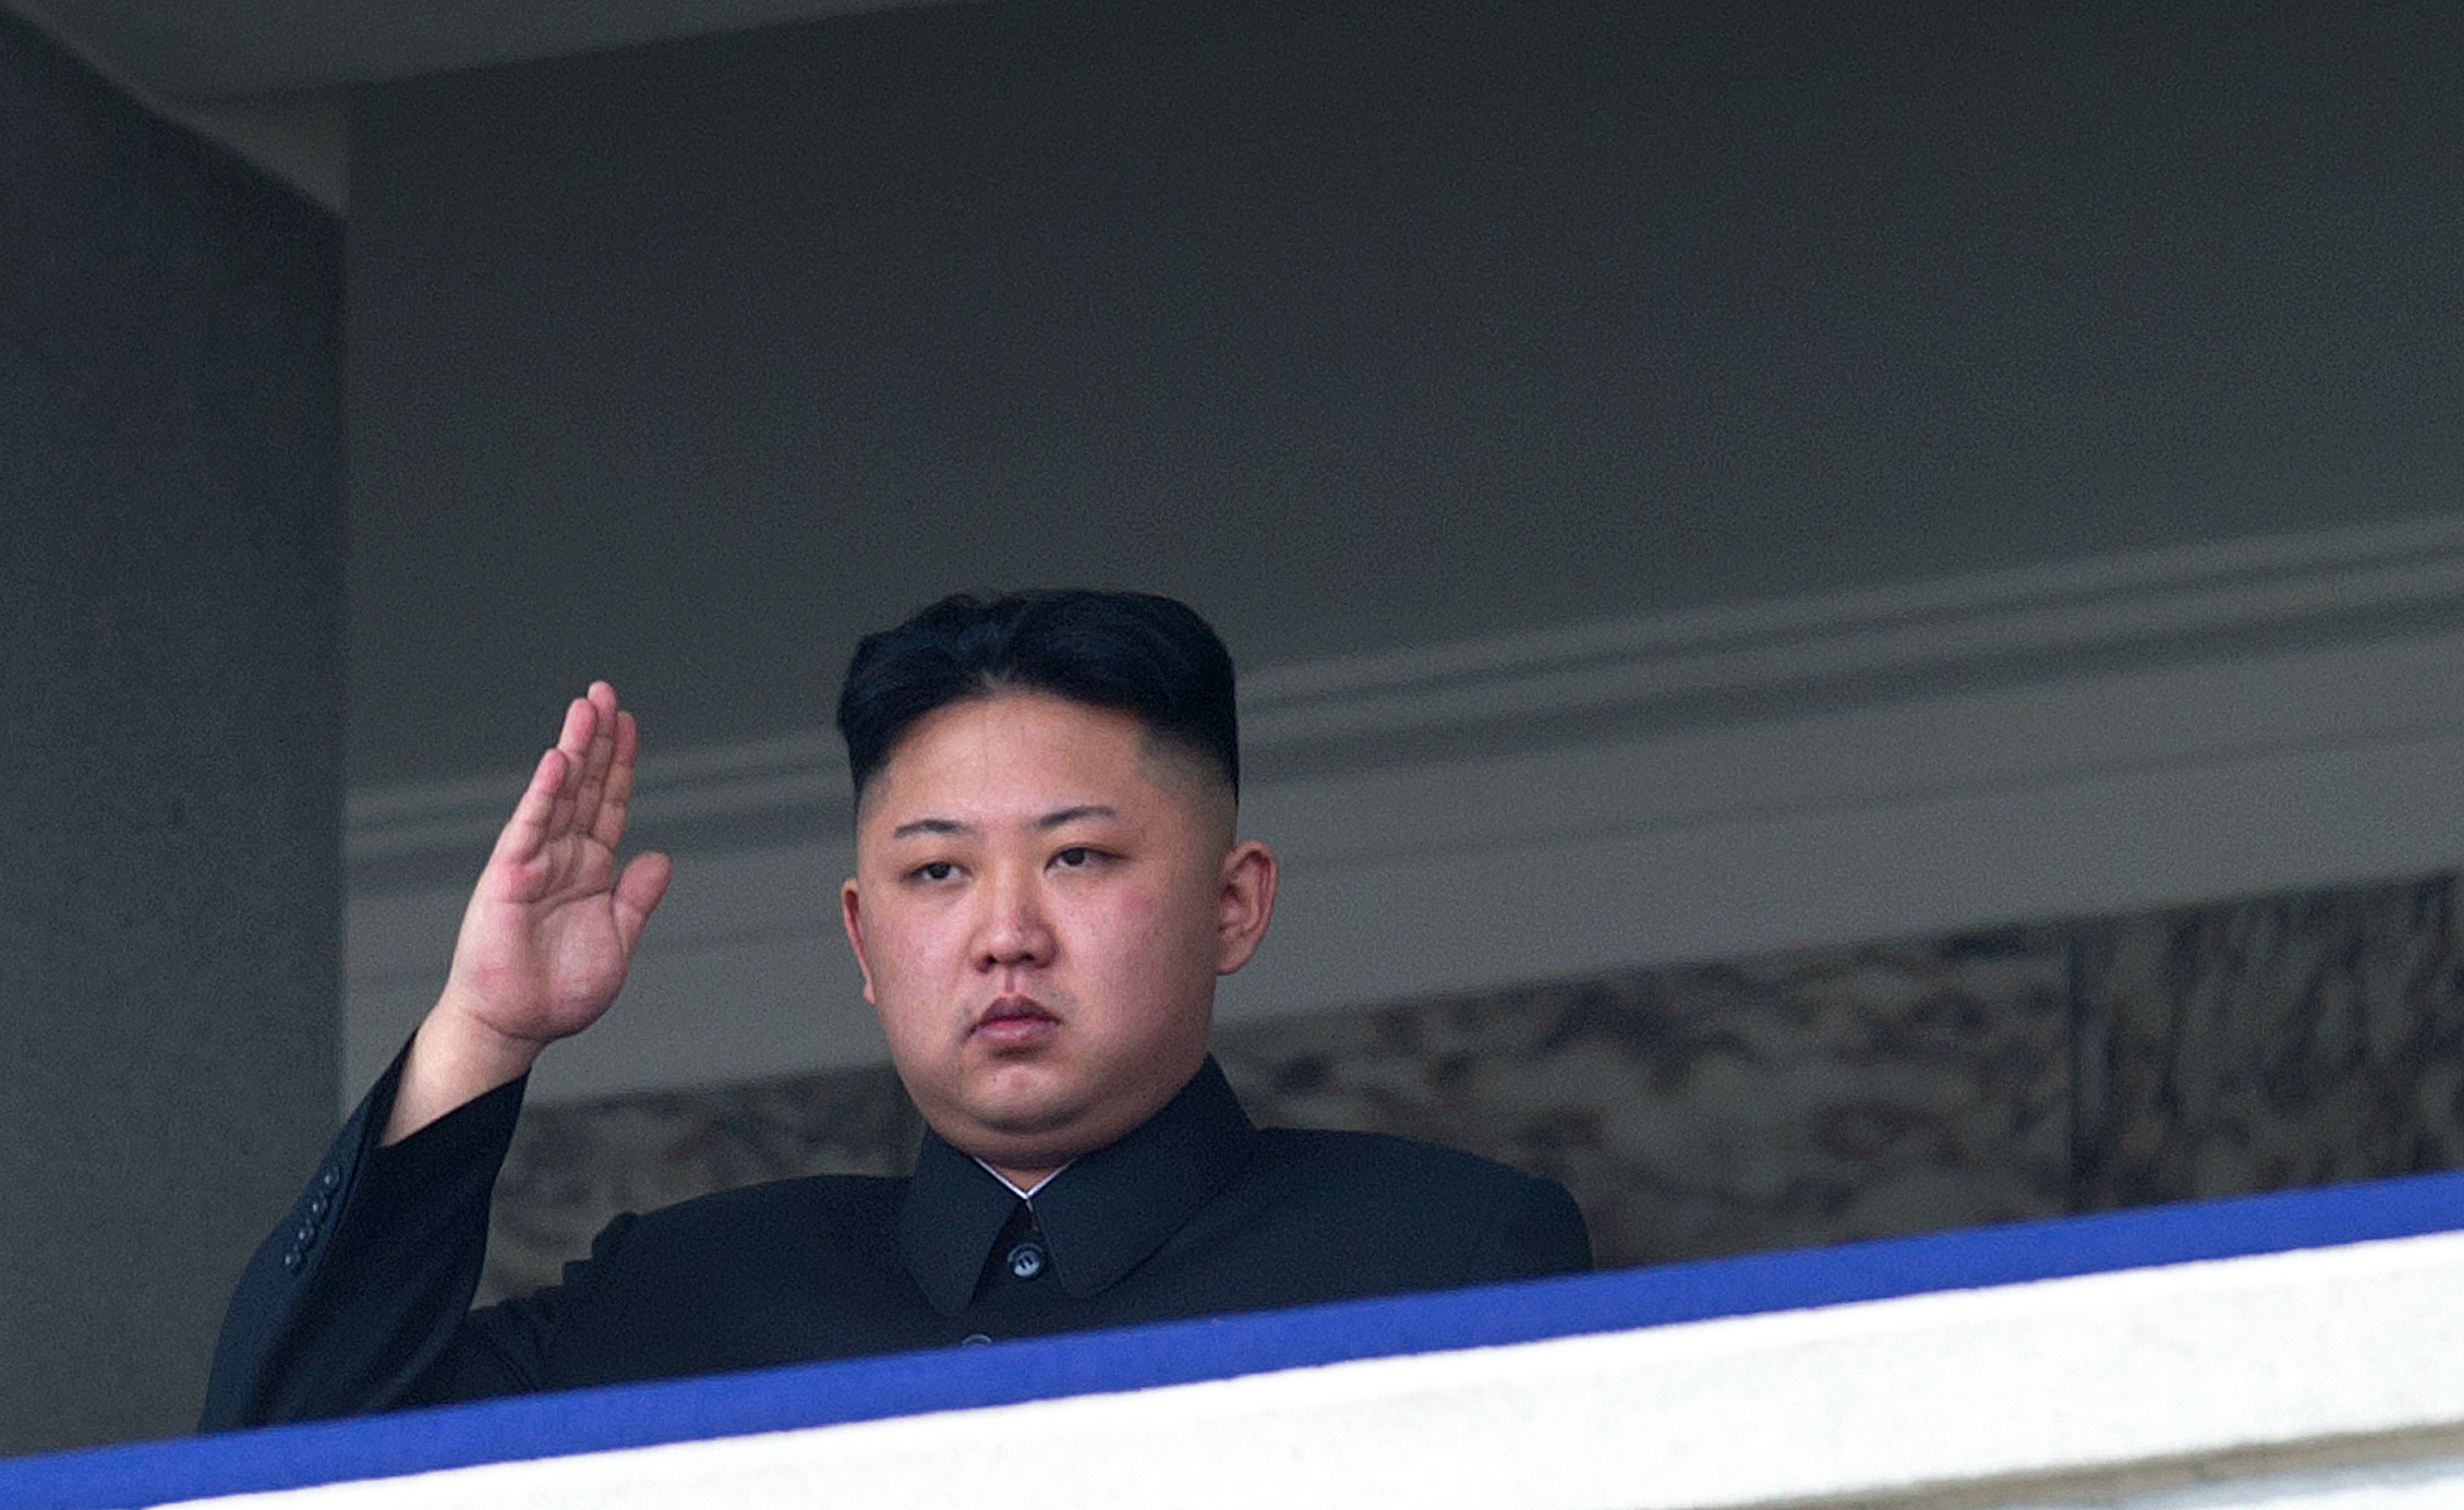 TO GO WITH Oly-2012-PRK,FEATURE (FILES) This file photo taken on April 15, 2012 shows North Korean leader Kim Jong-Un salutin